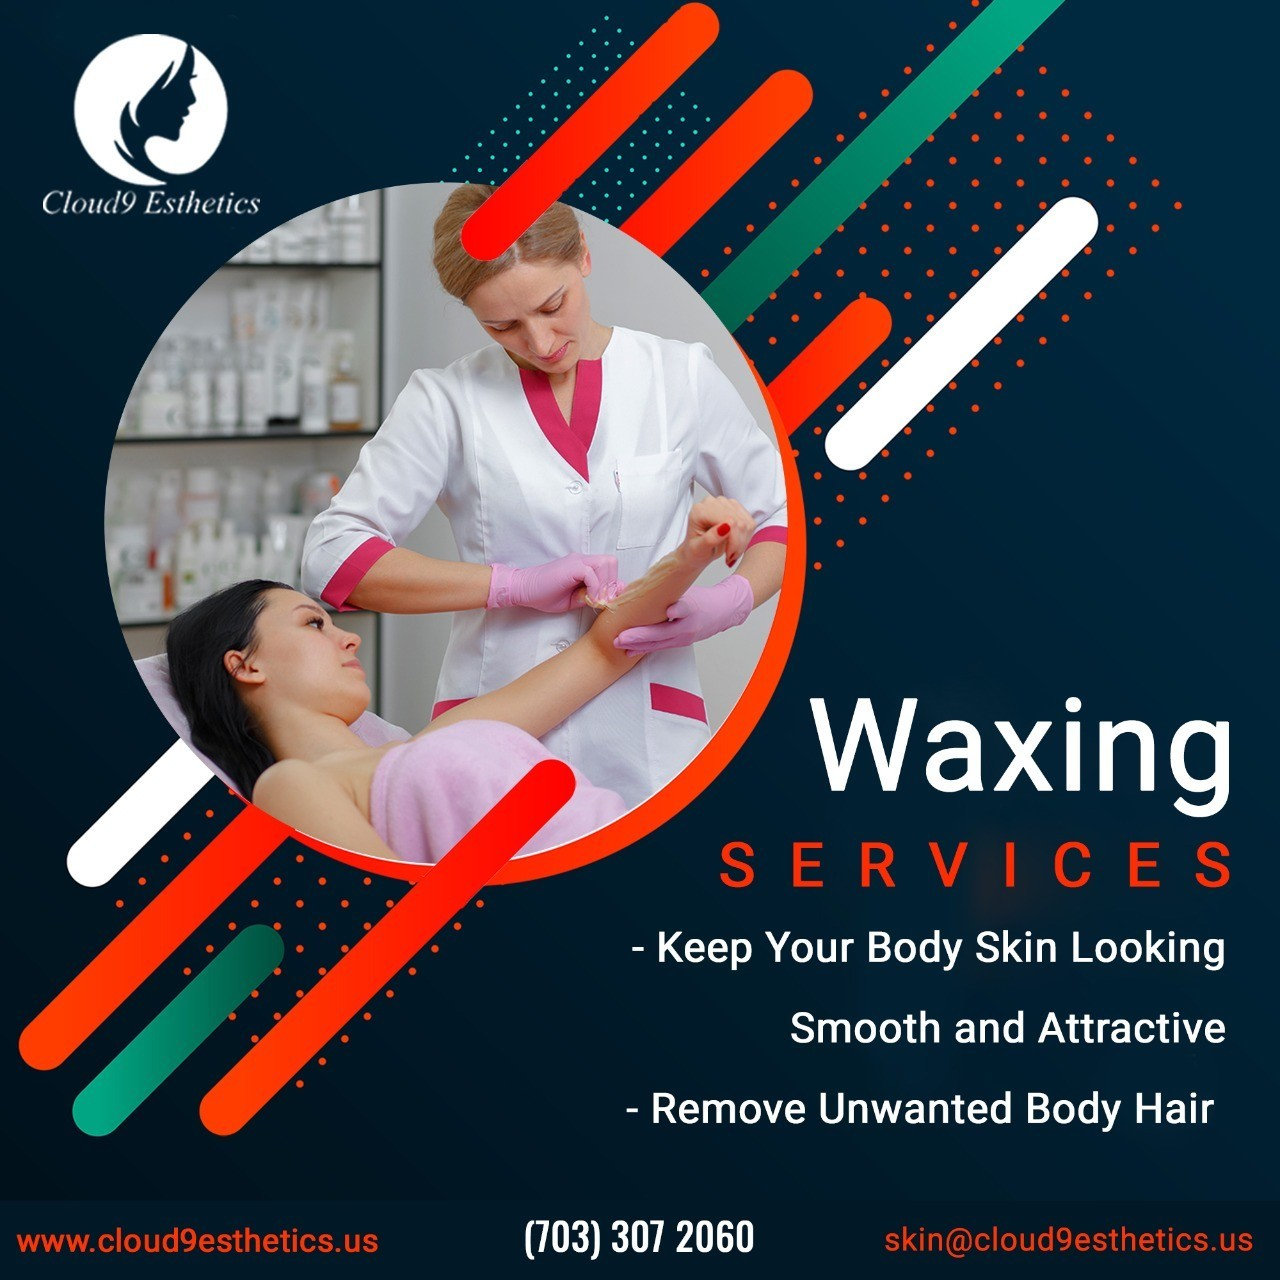 Best Waxing Services in Gainesville, Manassas | Hair Removal Services near you